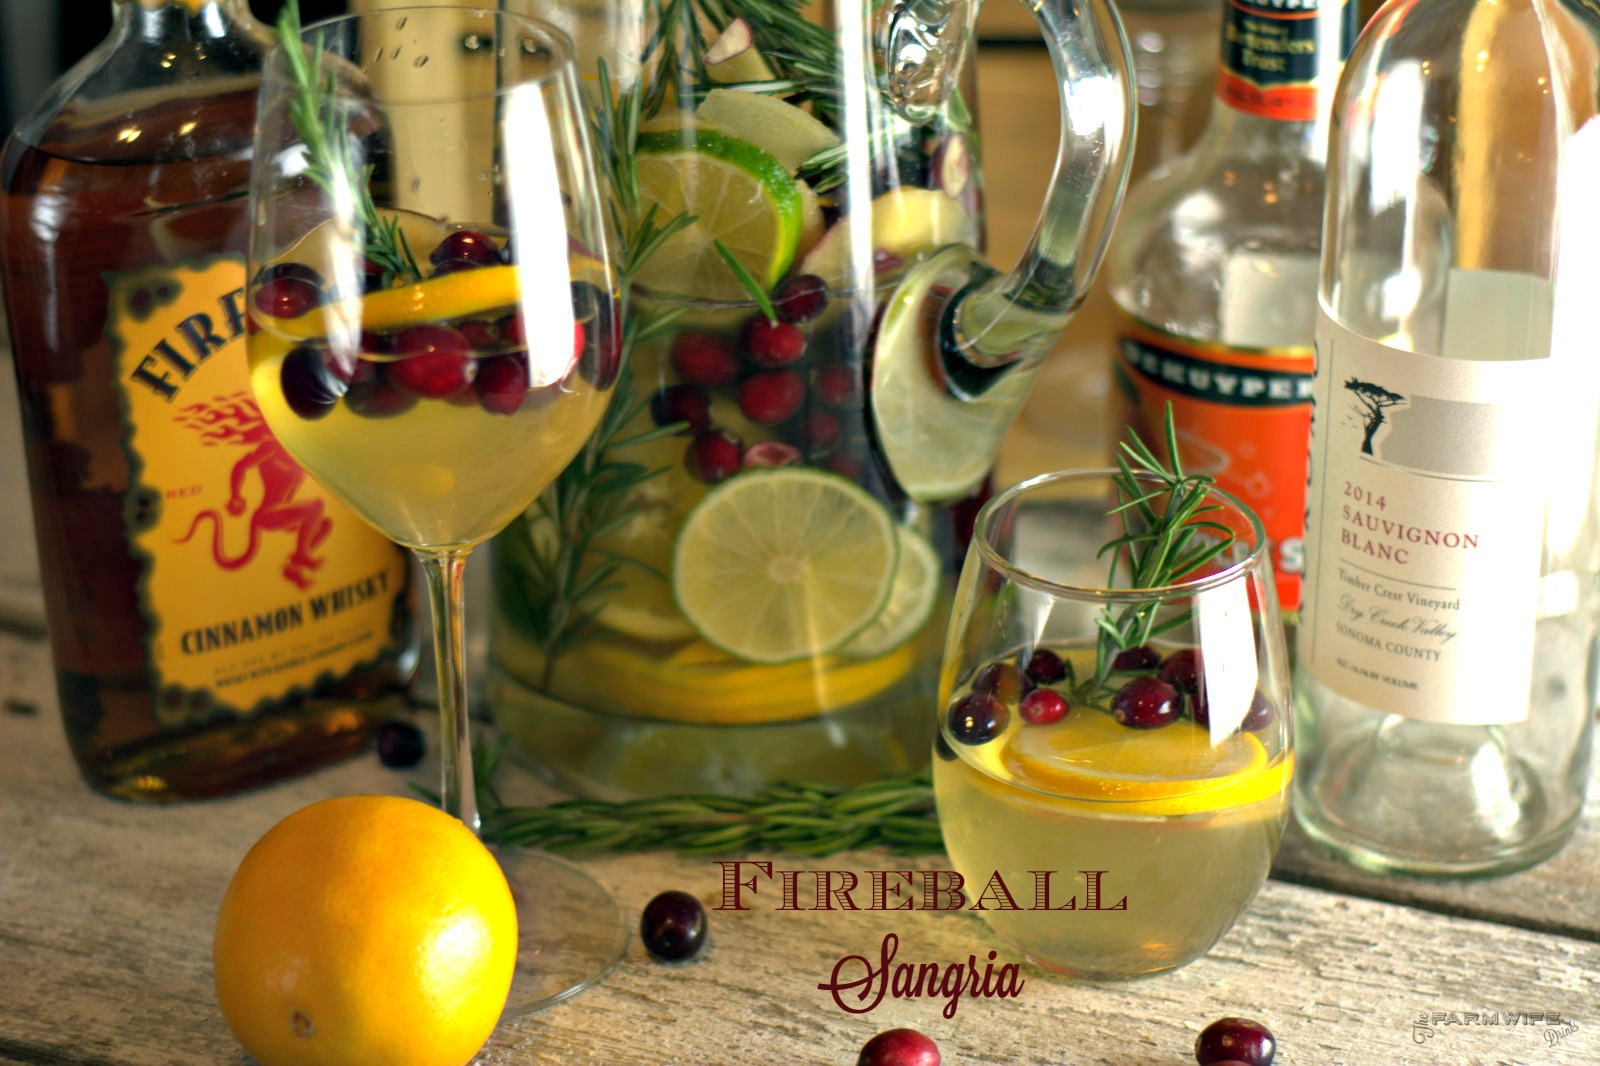 Fireball Sangria recipe is a crisp white wine sangria with a strong cinnamon flavor. Subtle hits of orange, cranberry, and apple make this the perfect Christmas Sangria.